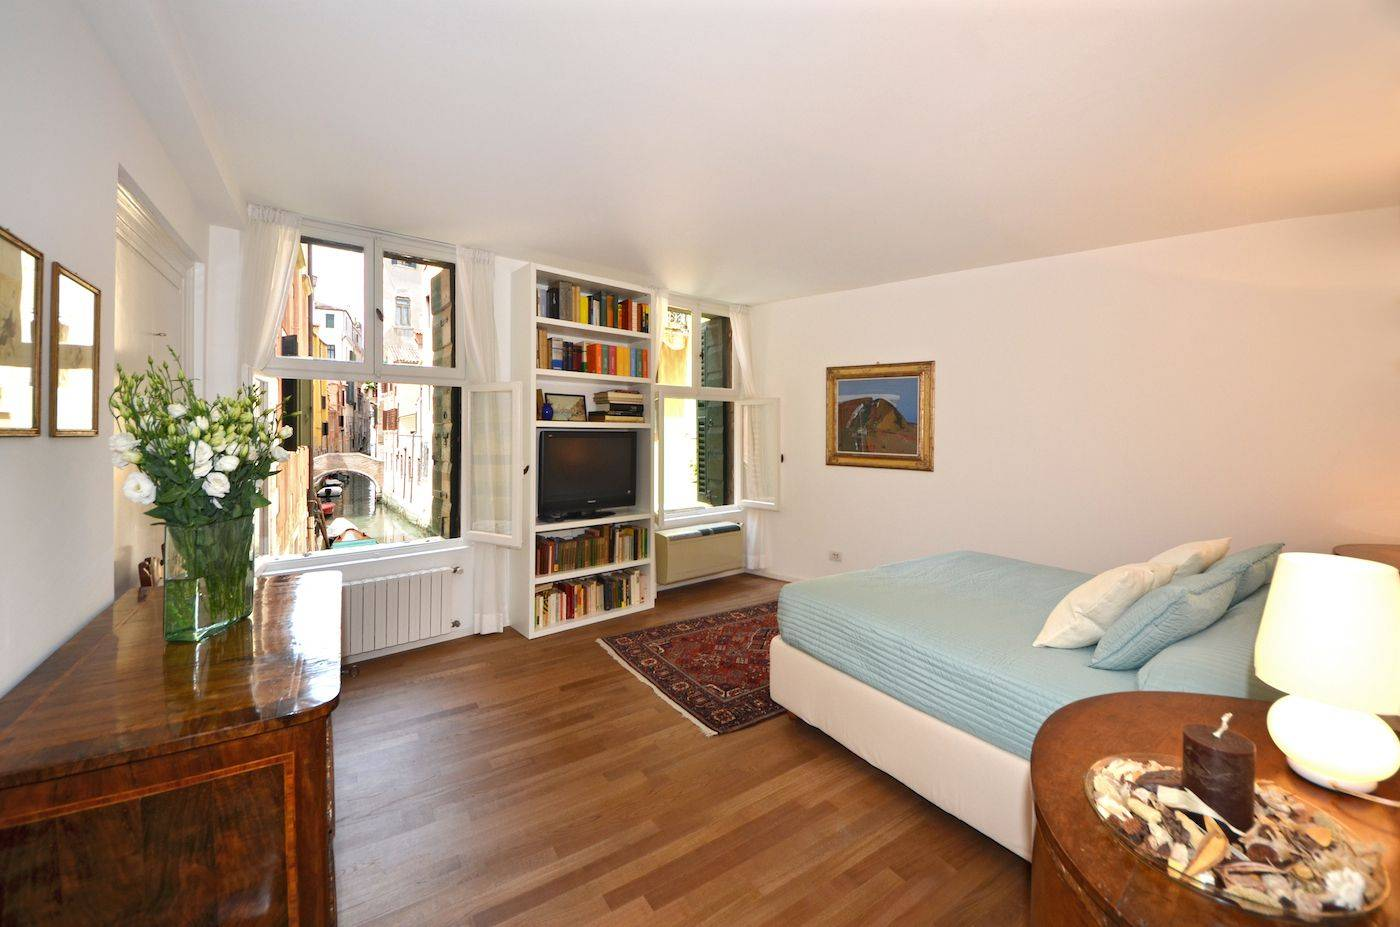 the spacious master bedroom features an incomparable canal view